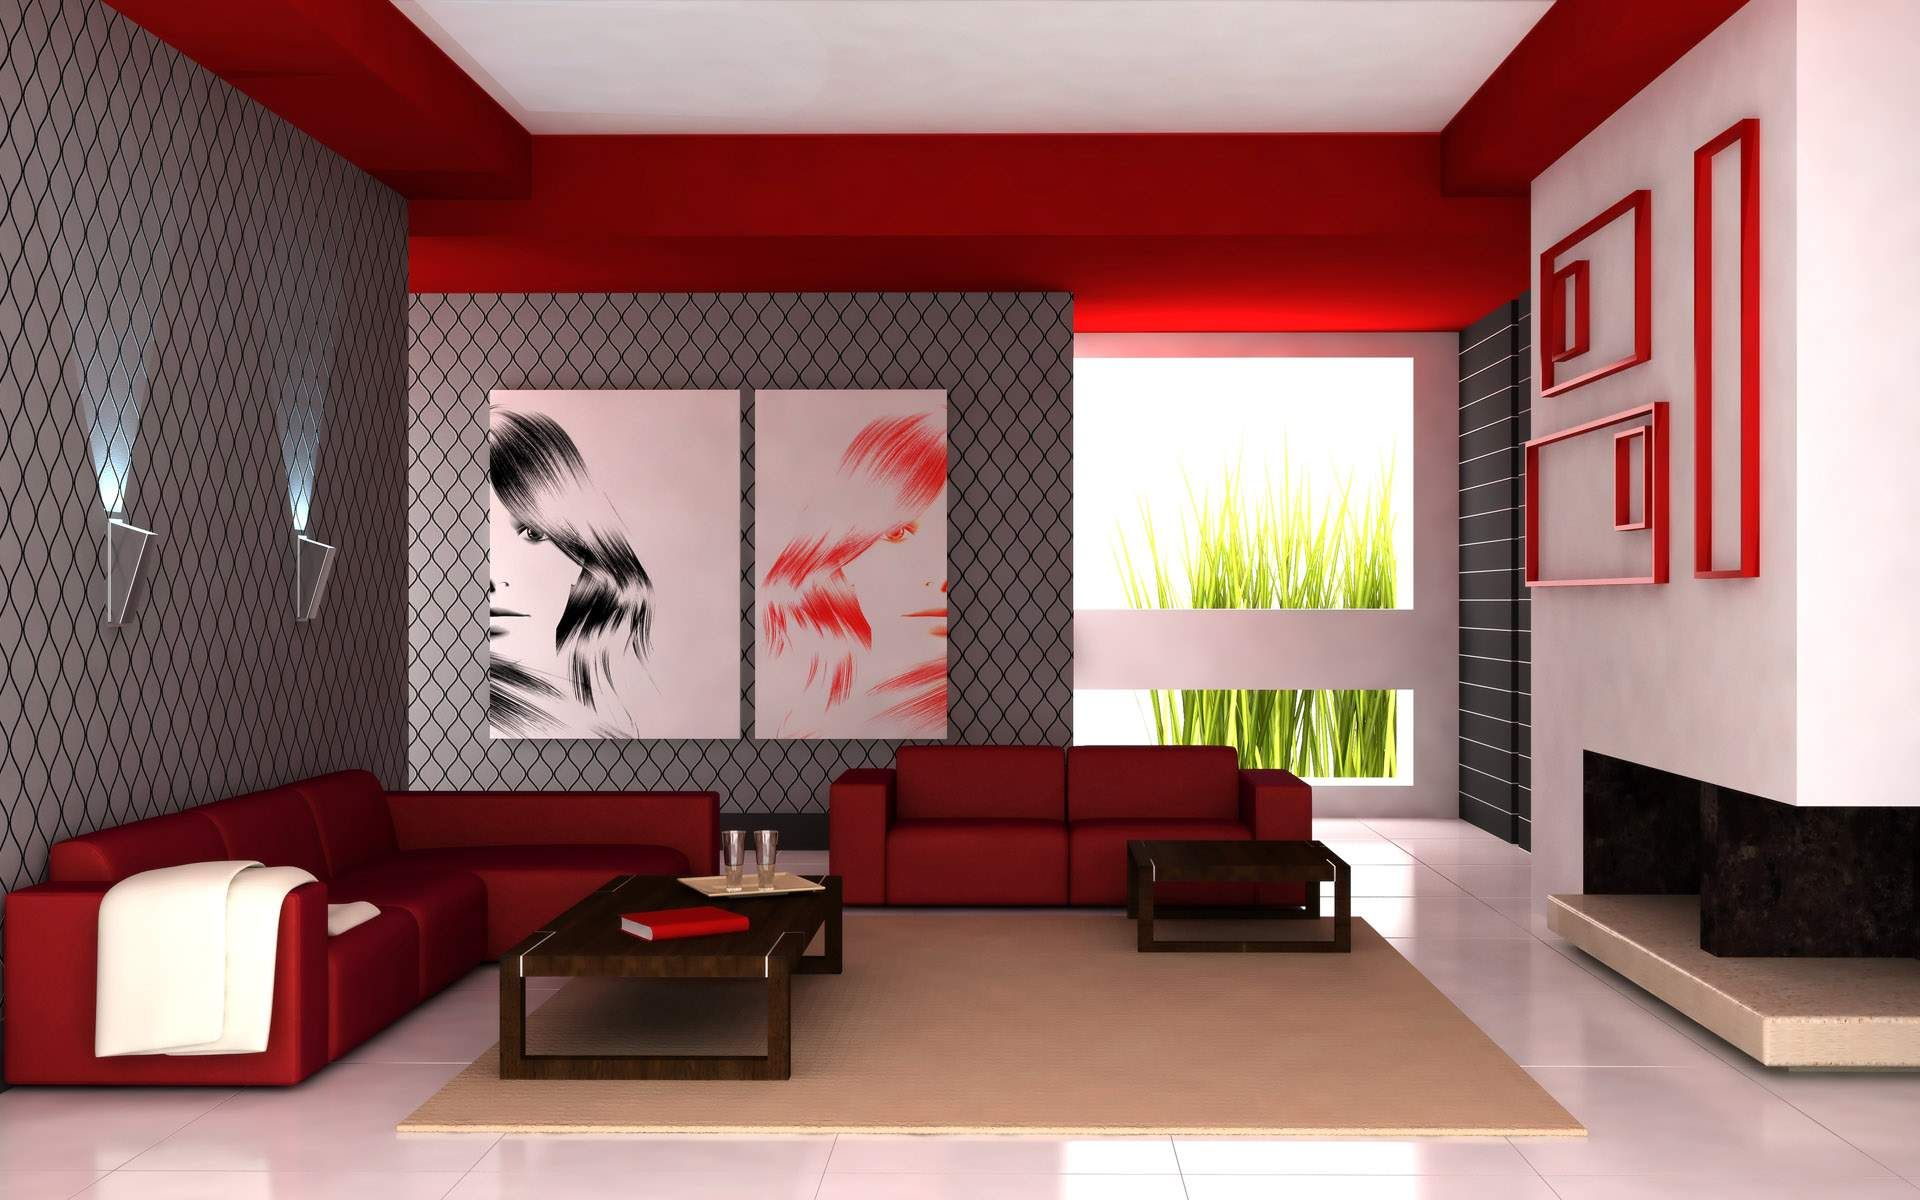 cool living room interior with flashy red color stylendesignscom red living roomsmodern